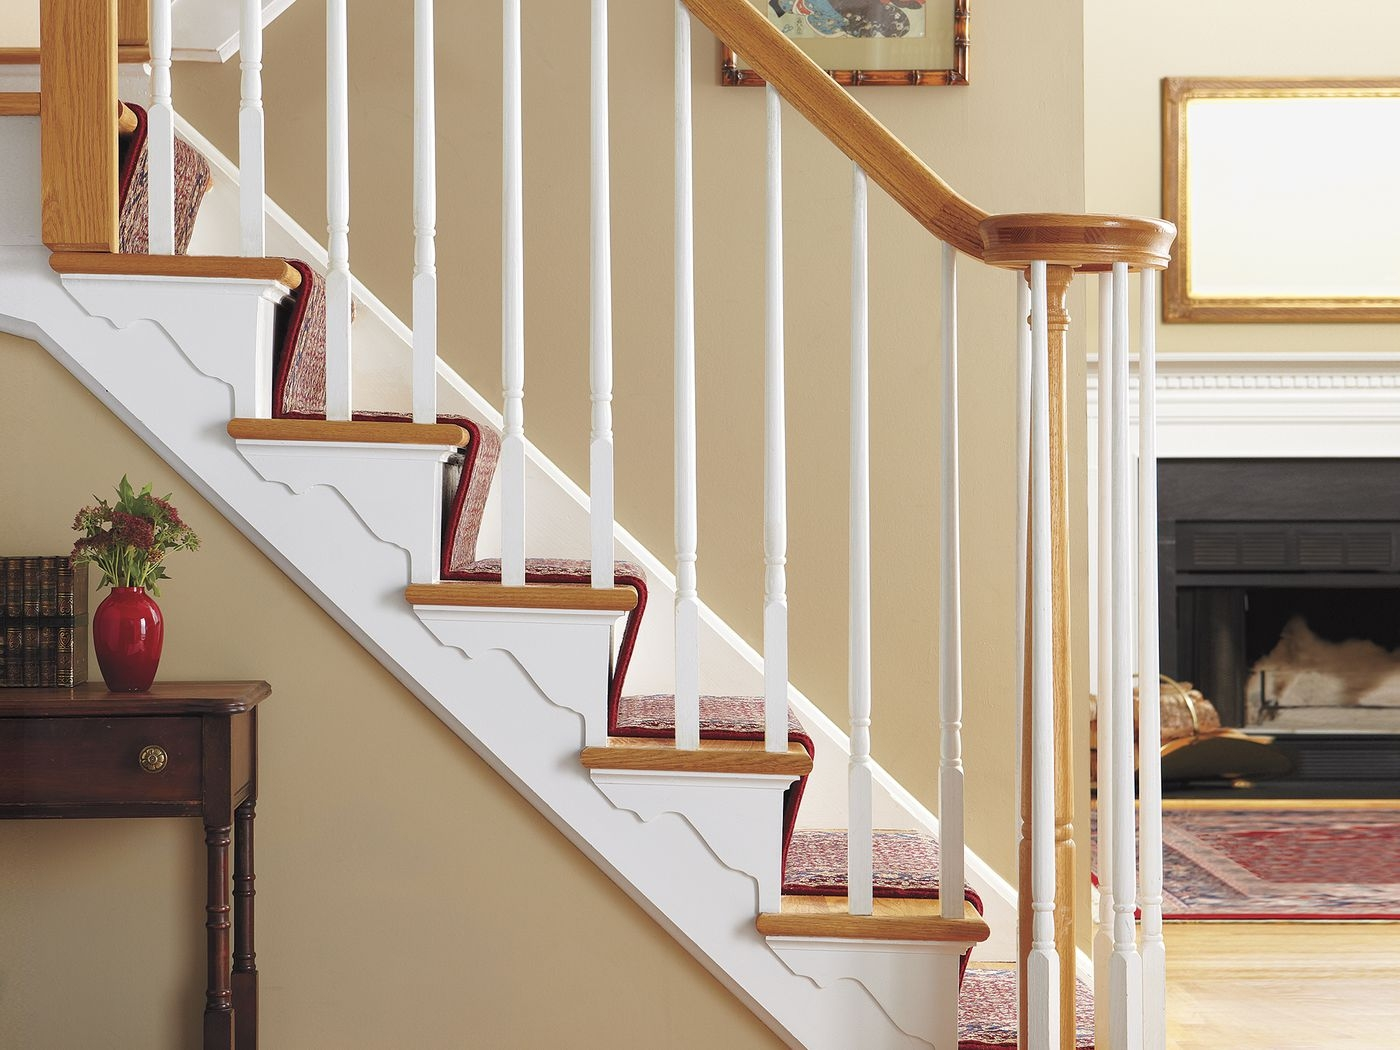 21 Home Improvement Ideas On Budget This Old House | House Inner Steps Design | Residential | Internal Step | Upstairs | Apartment Duplex | Unique